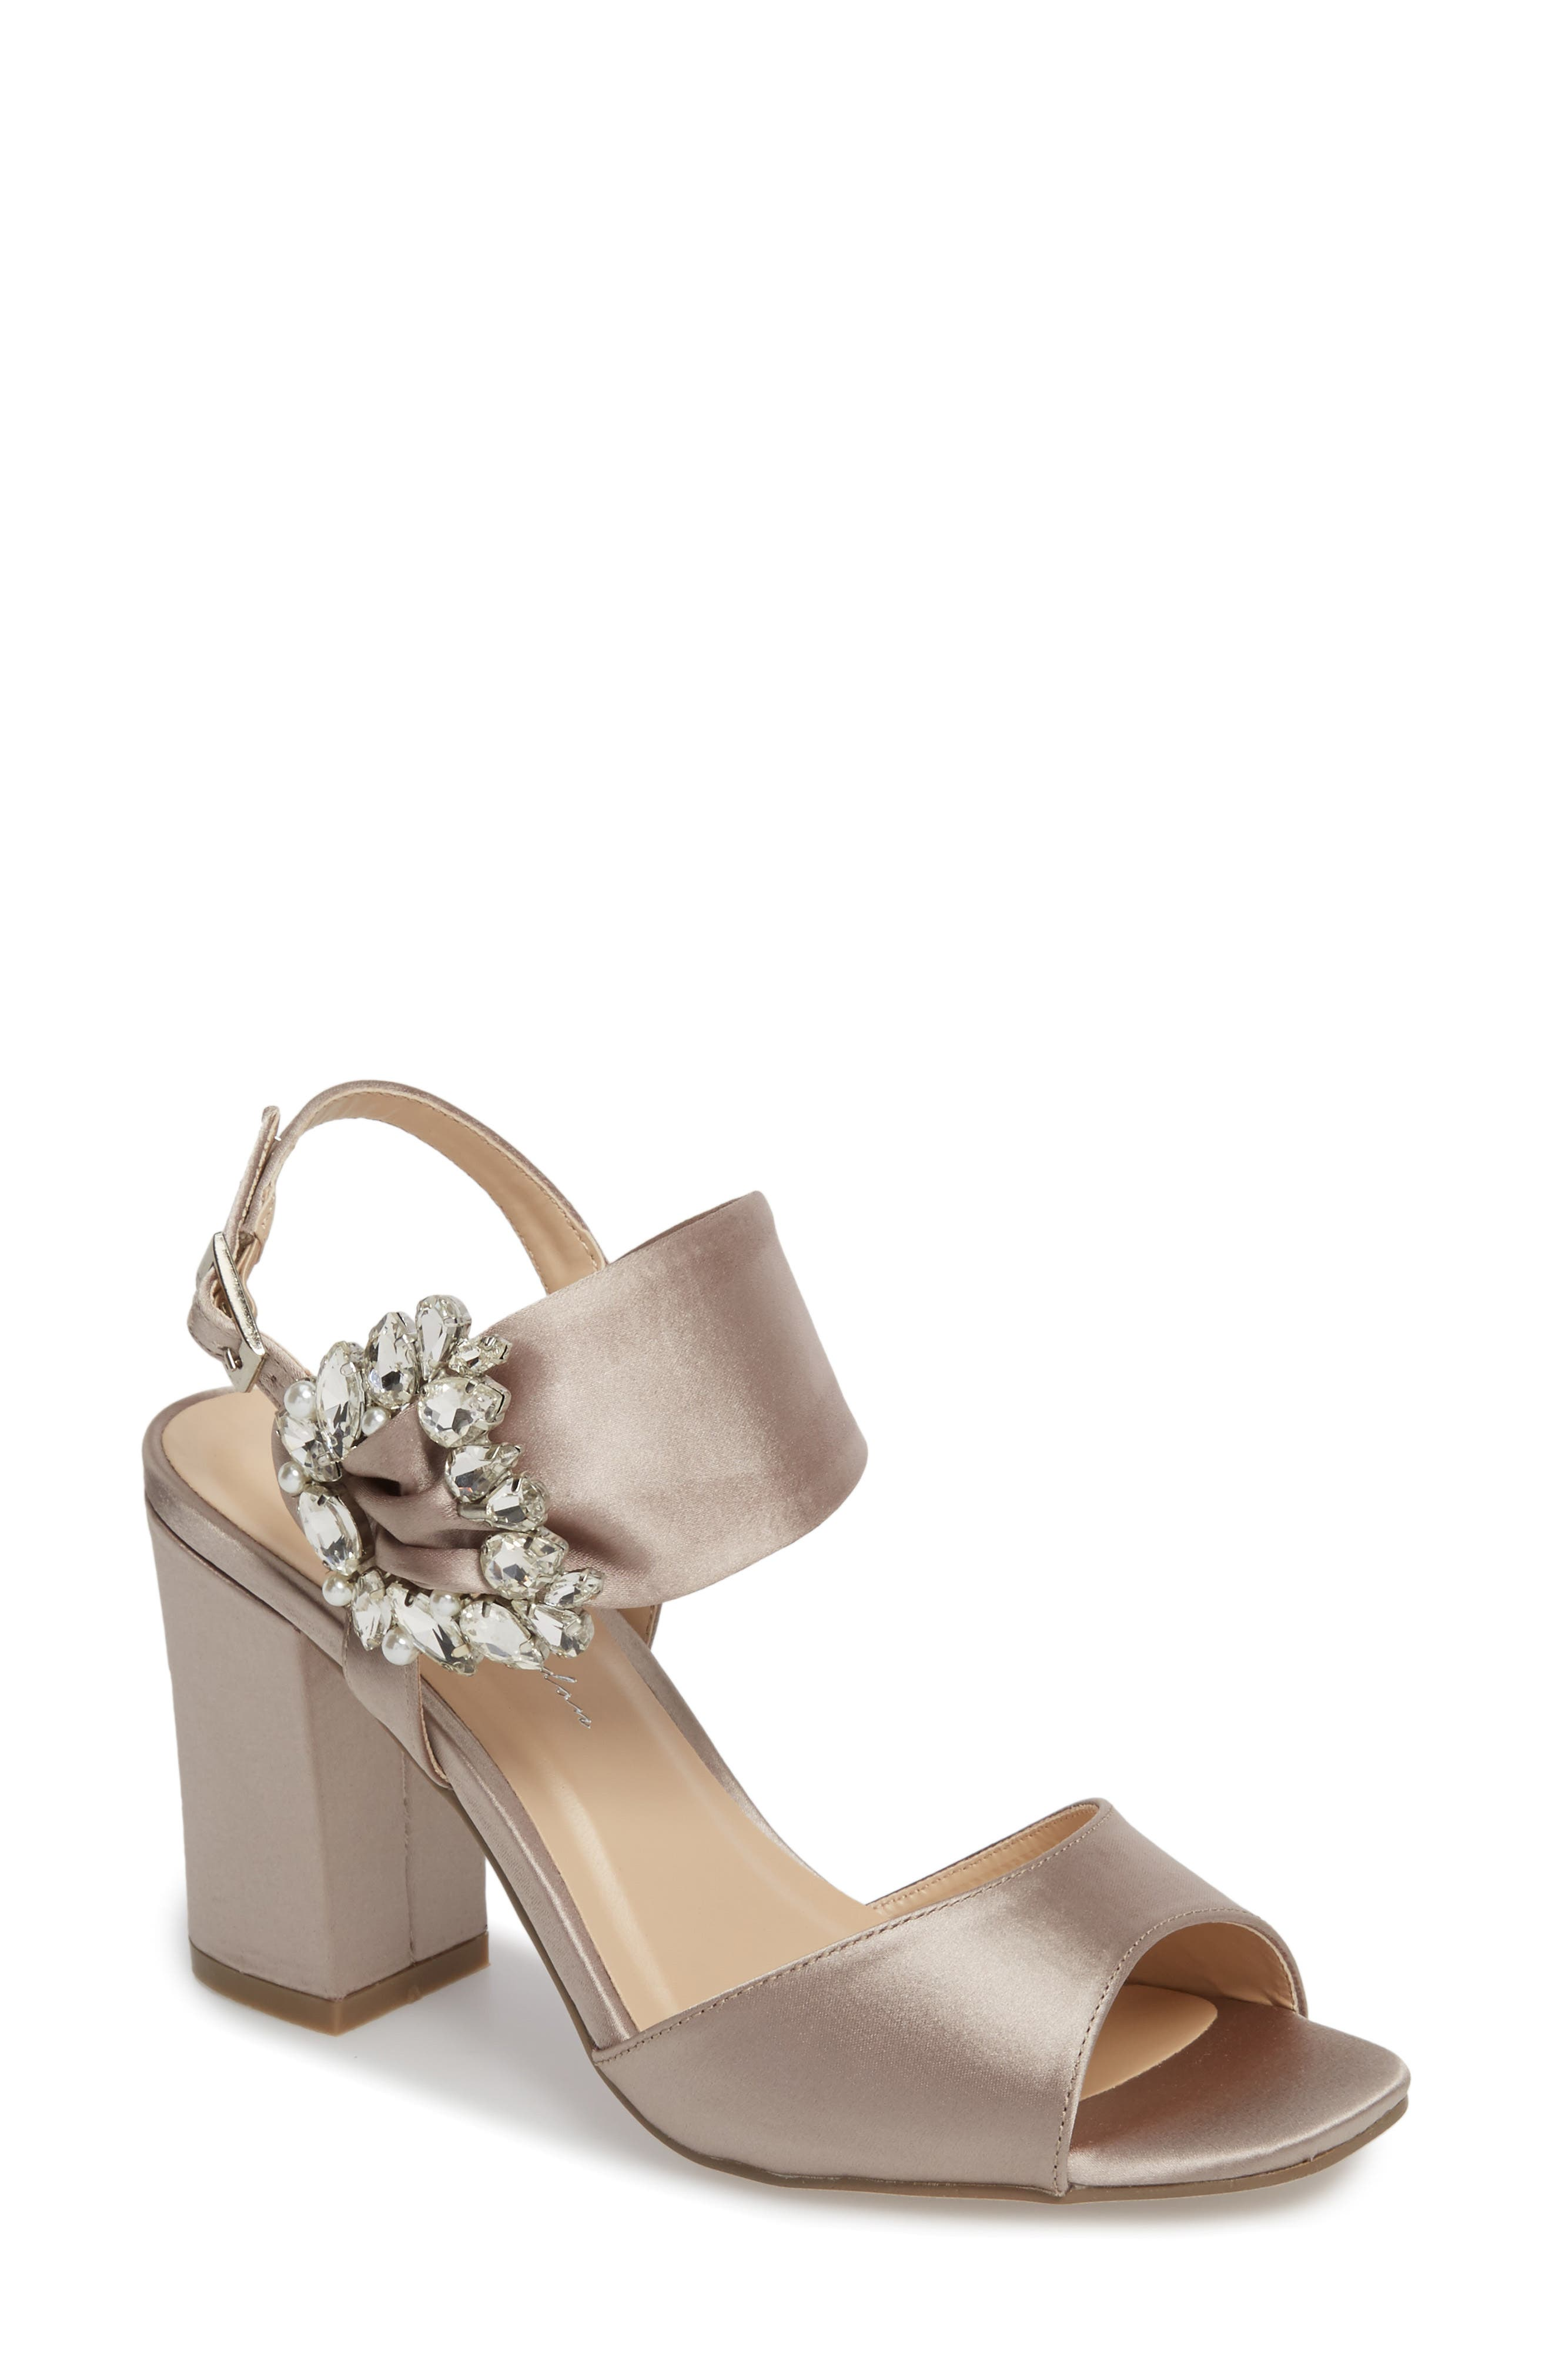 Manhattan Embellished Sandal,                         Main,                         color, TAUPE SATIN